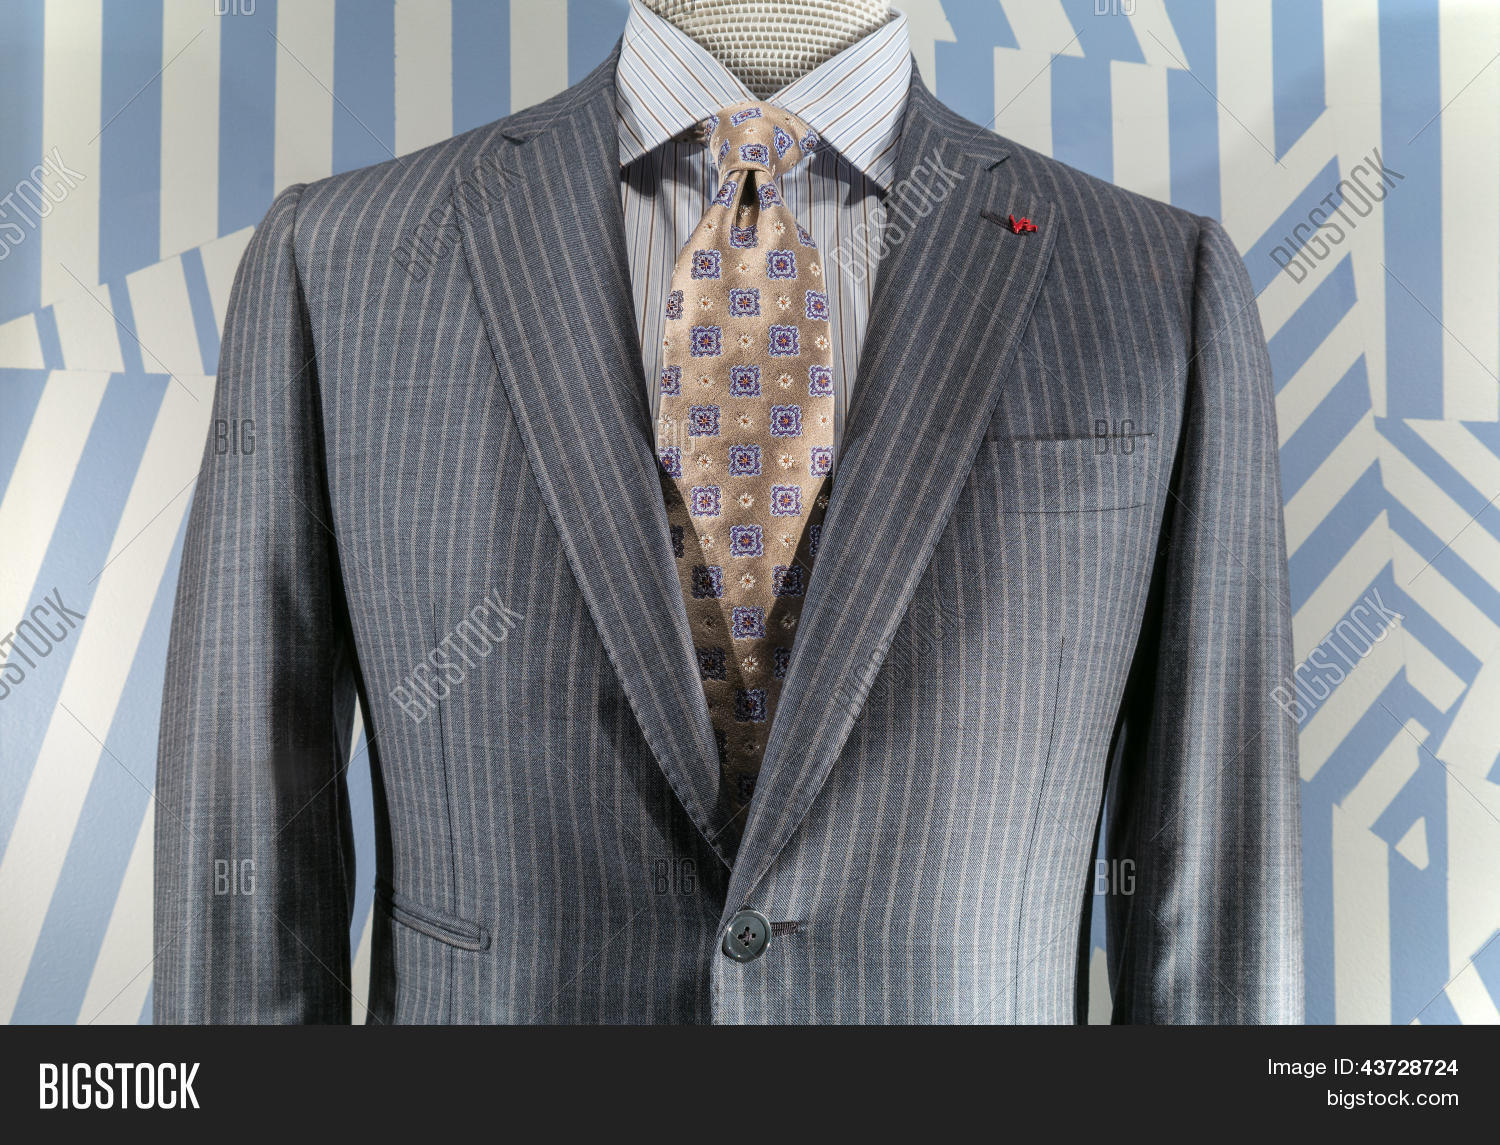 Light gray striped jacket blue image photo bigstock for Blue striped shirt with tie